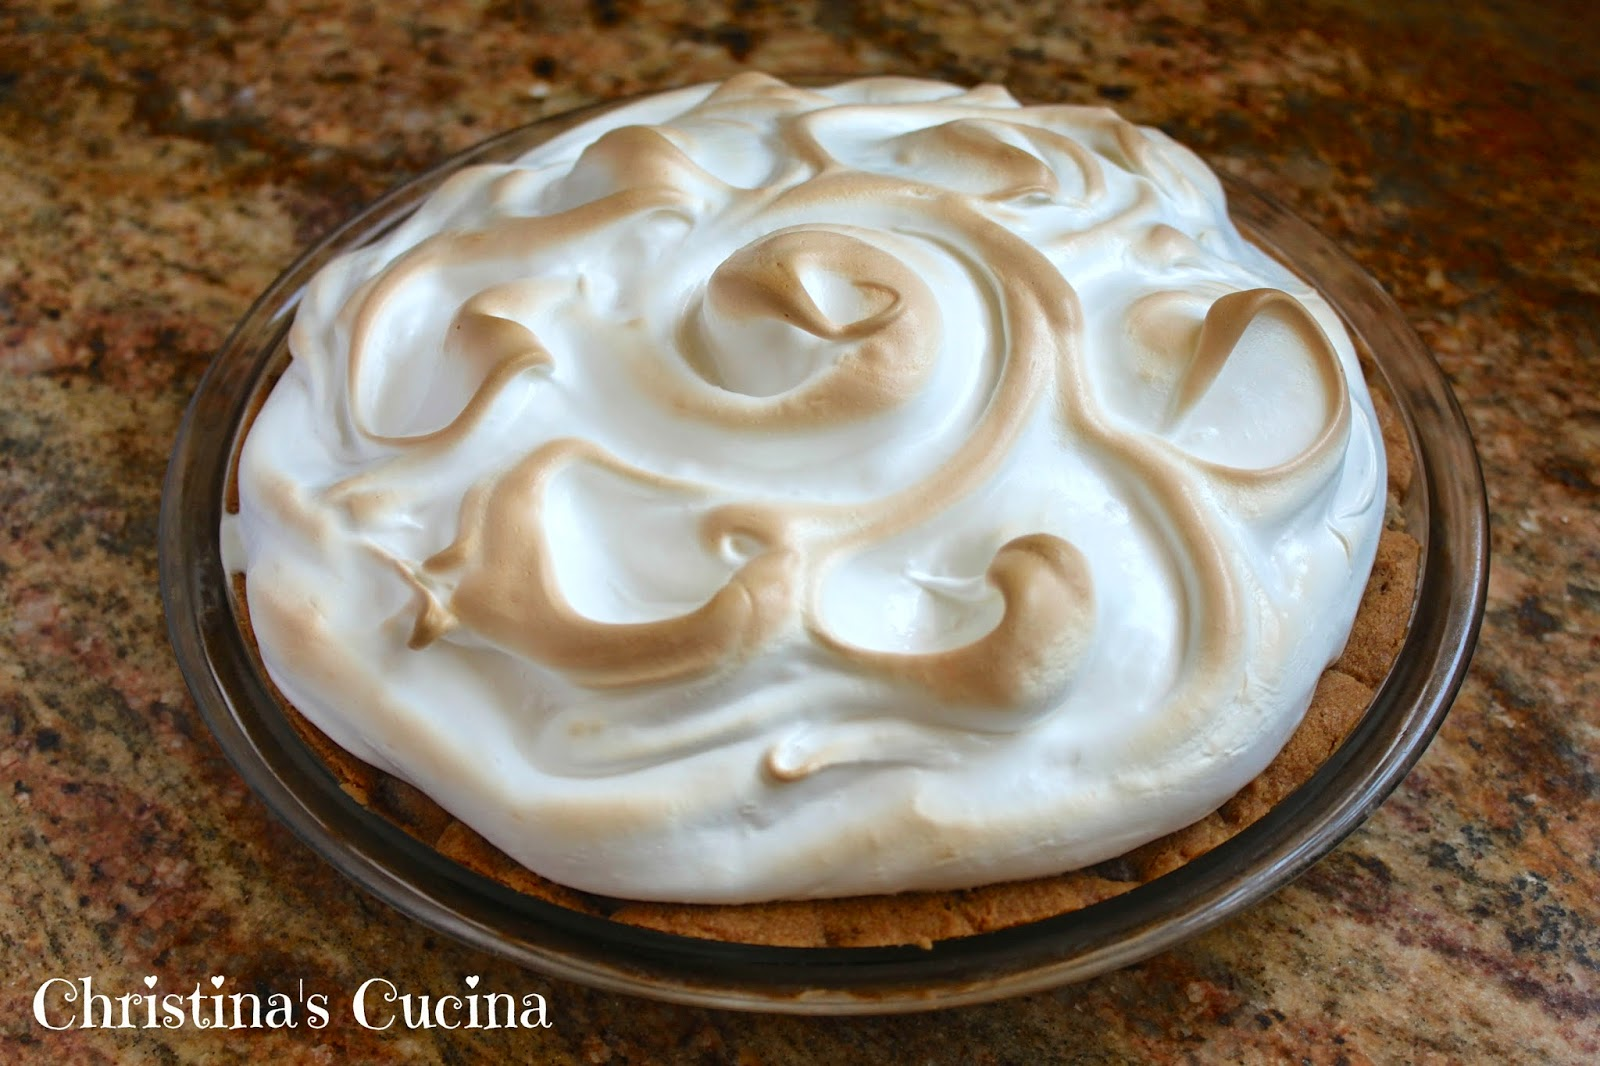 ... Father's Day, may I Suggest a Chocolate Chip Cookie Baked Alaska Pie